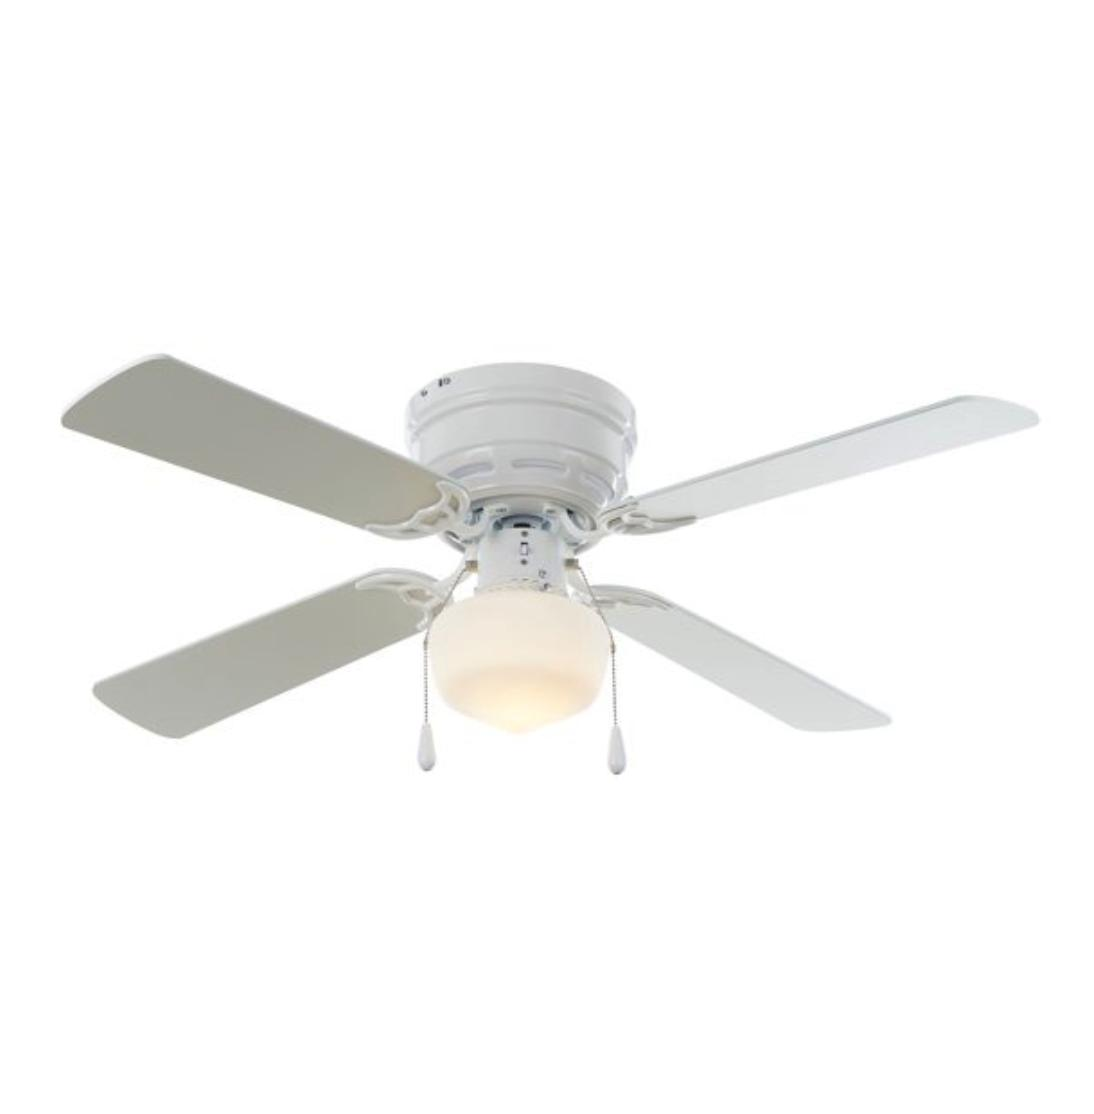 42 inch flush mount ceiling fan white